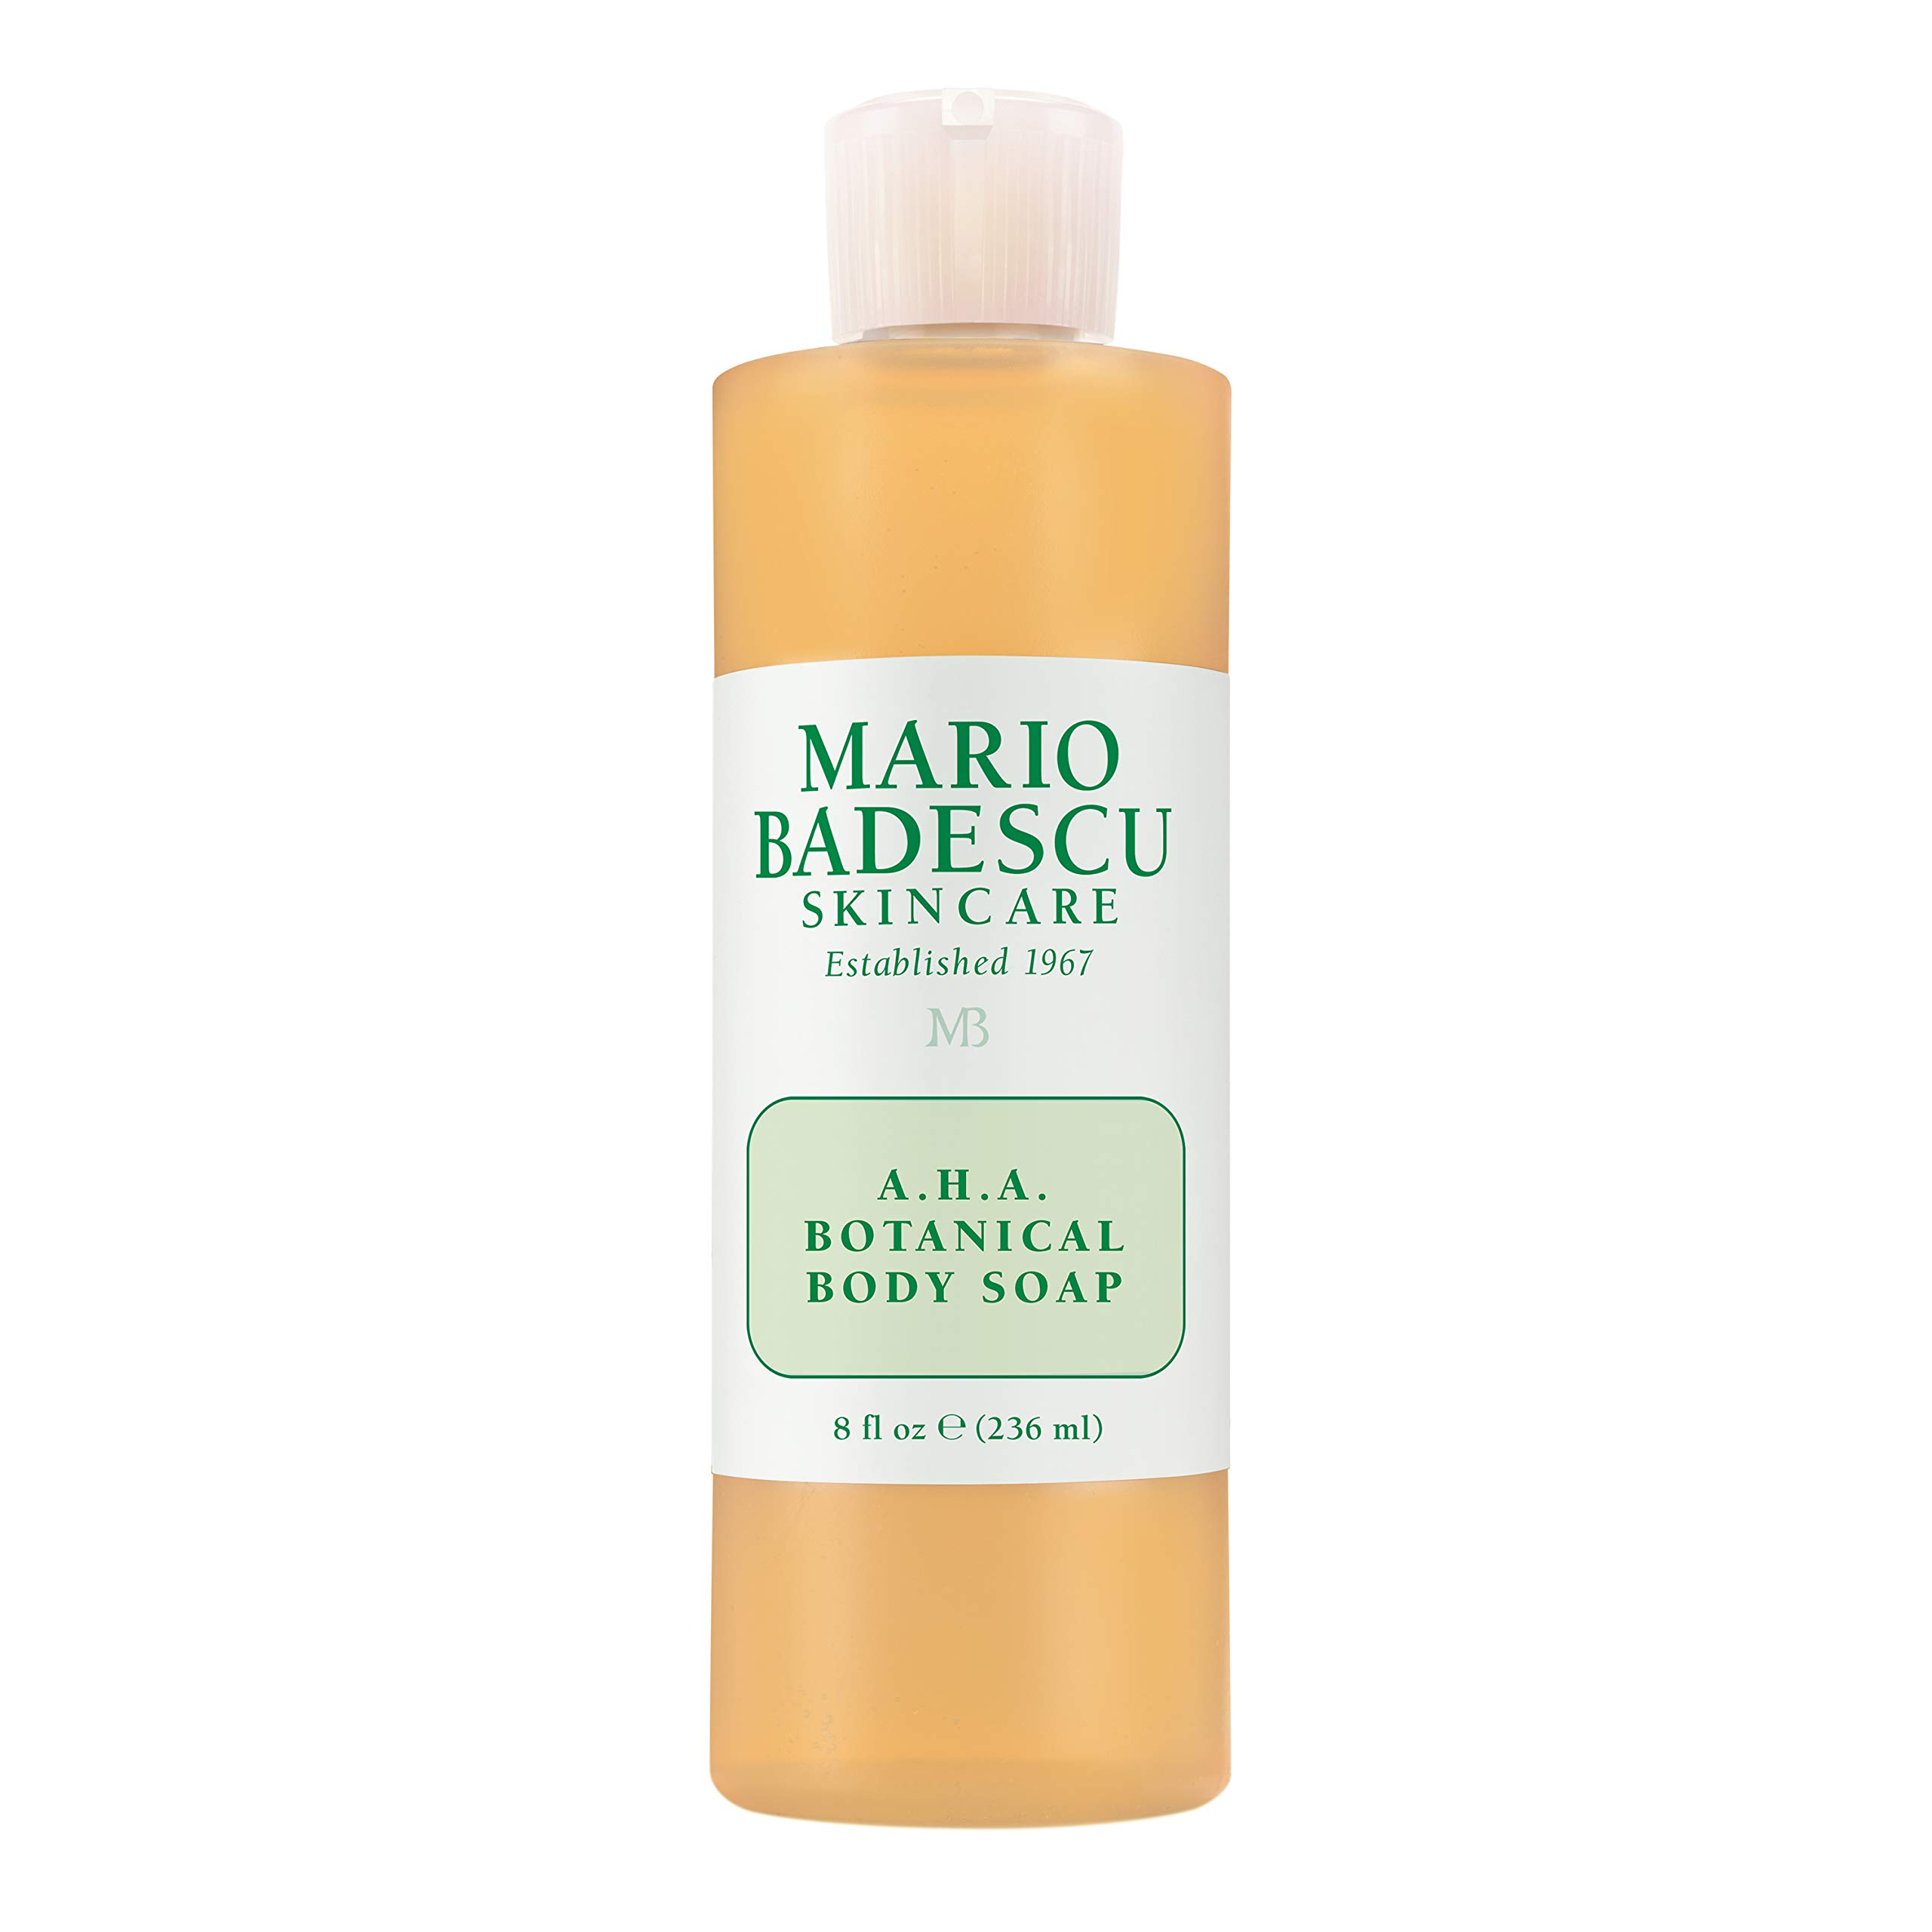 Mario Badescu A.H.A. Botanical Body Soap - For All Skin Types 236ml